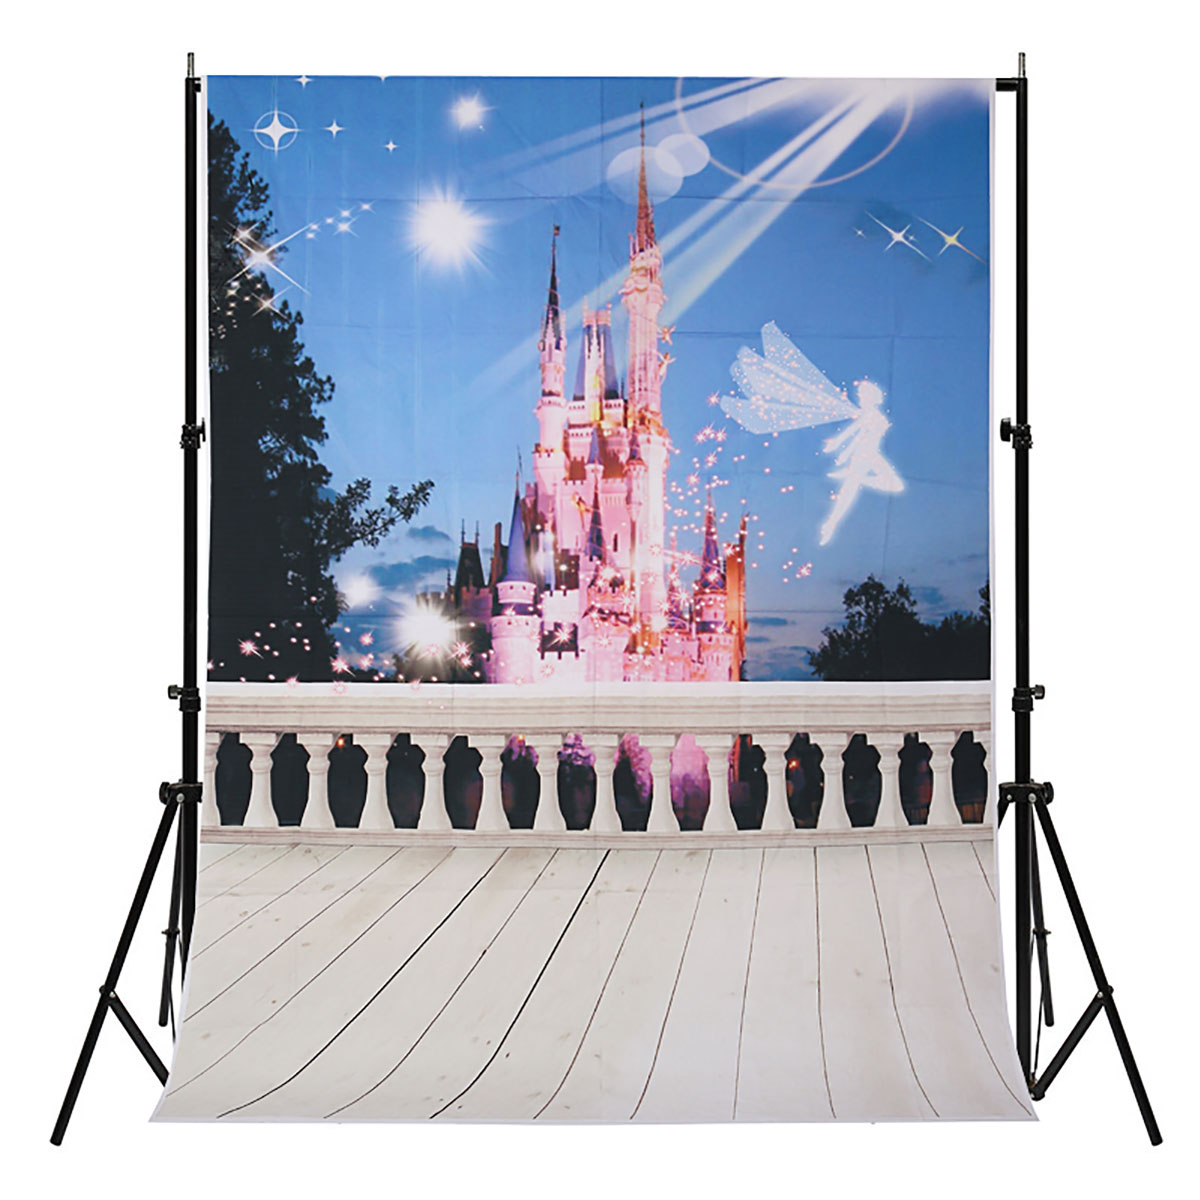 5X7FT Portray Dream Fairy Tale Castle Backdrop Photography Prop Studio Background